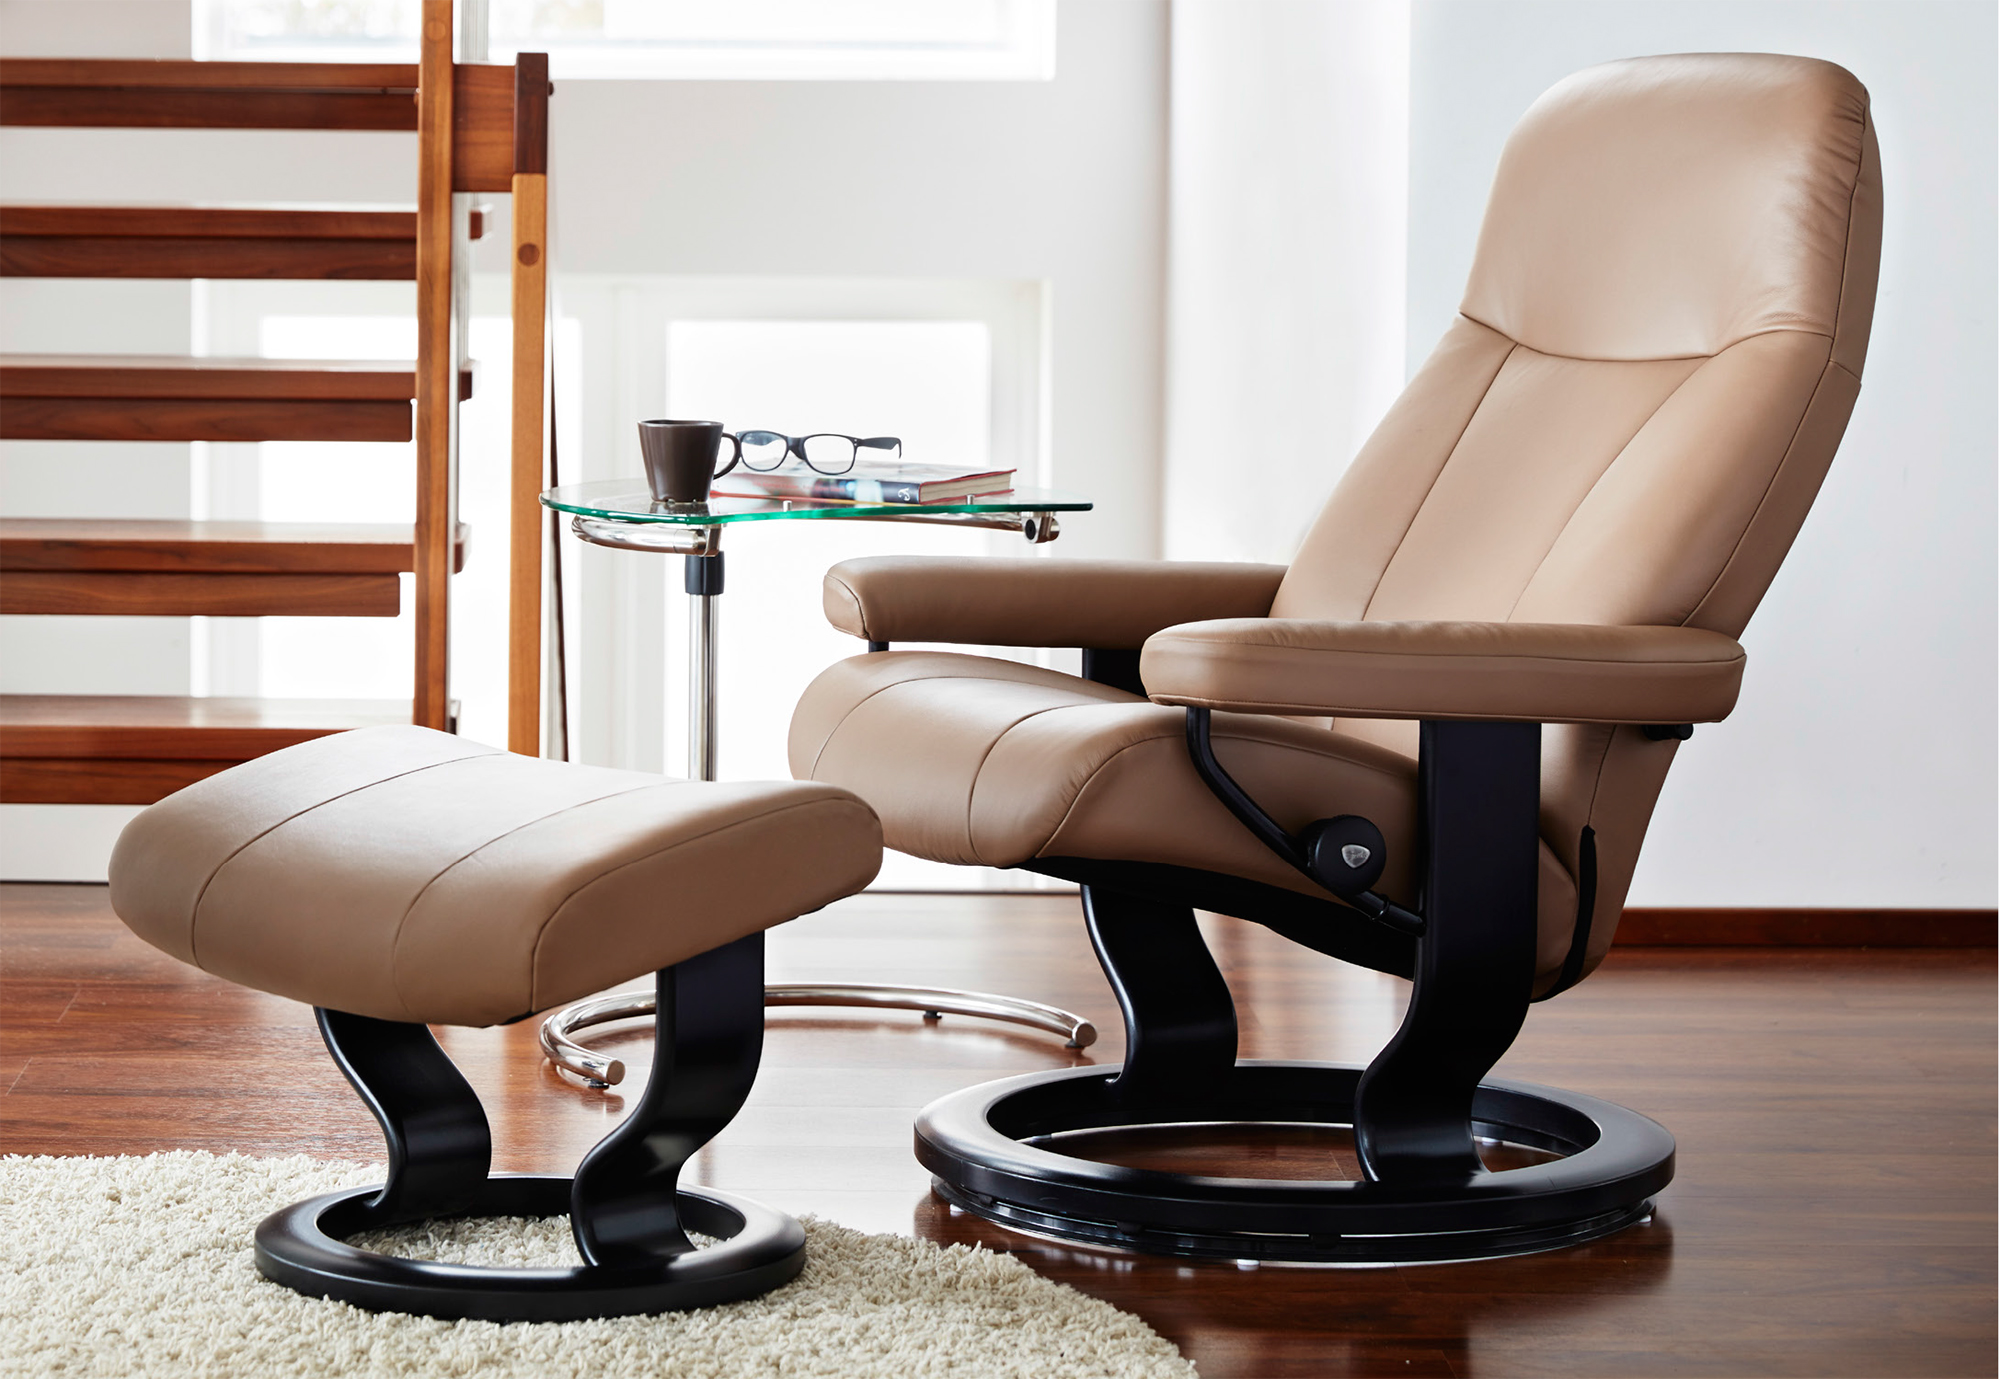 Ekornes Stressless Stressless Garda Recliner Classic Chair And Ottoman By Ekornes